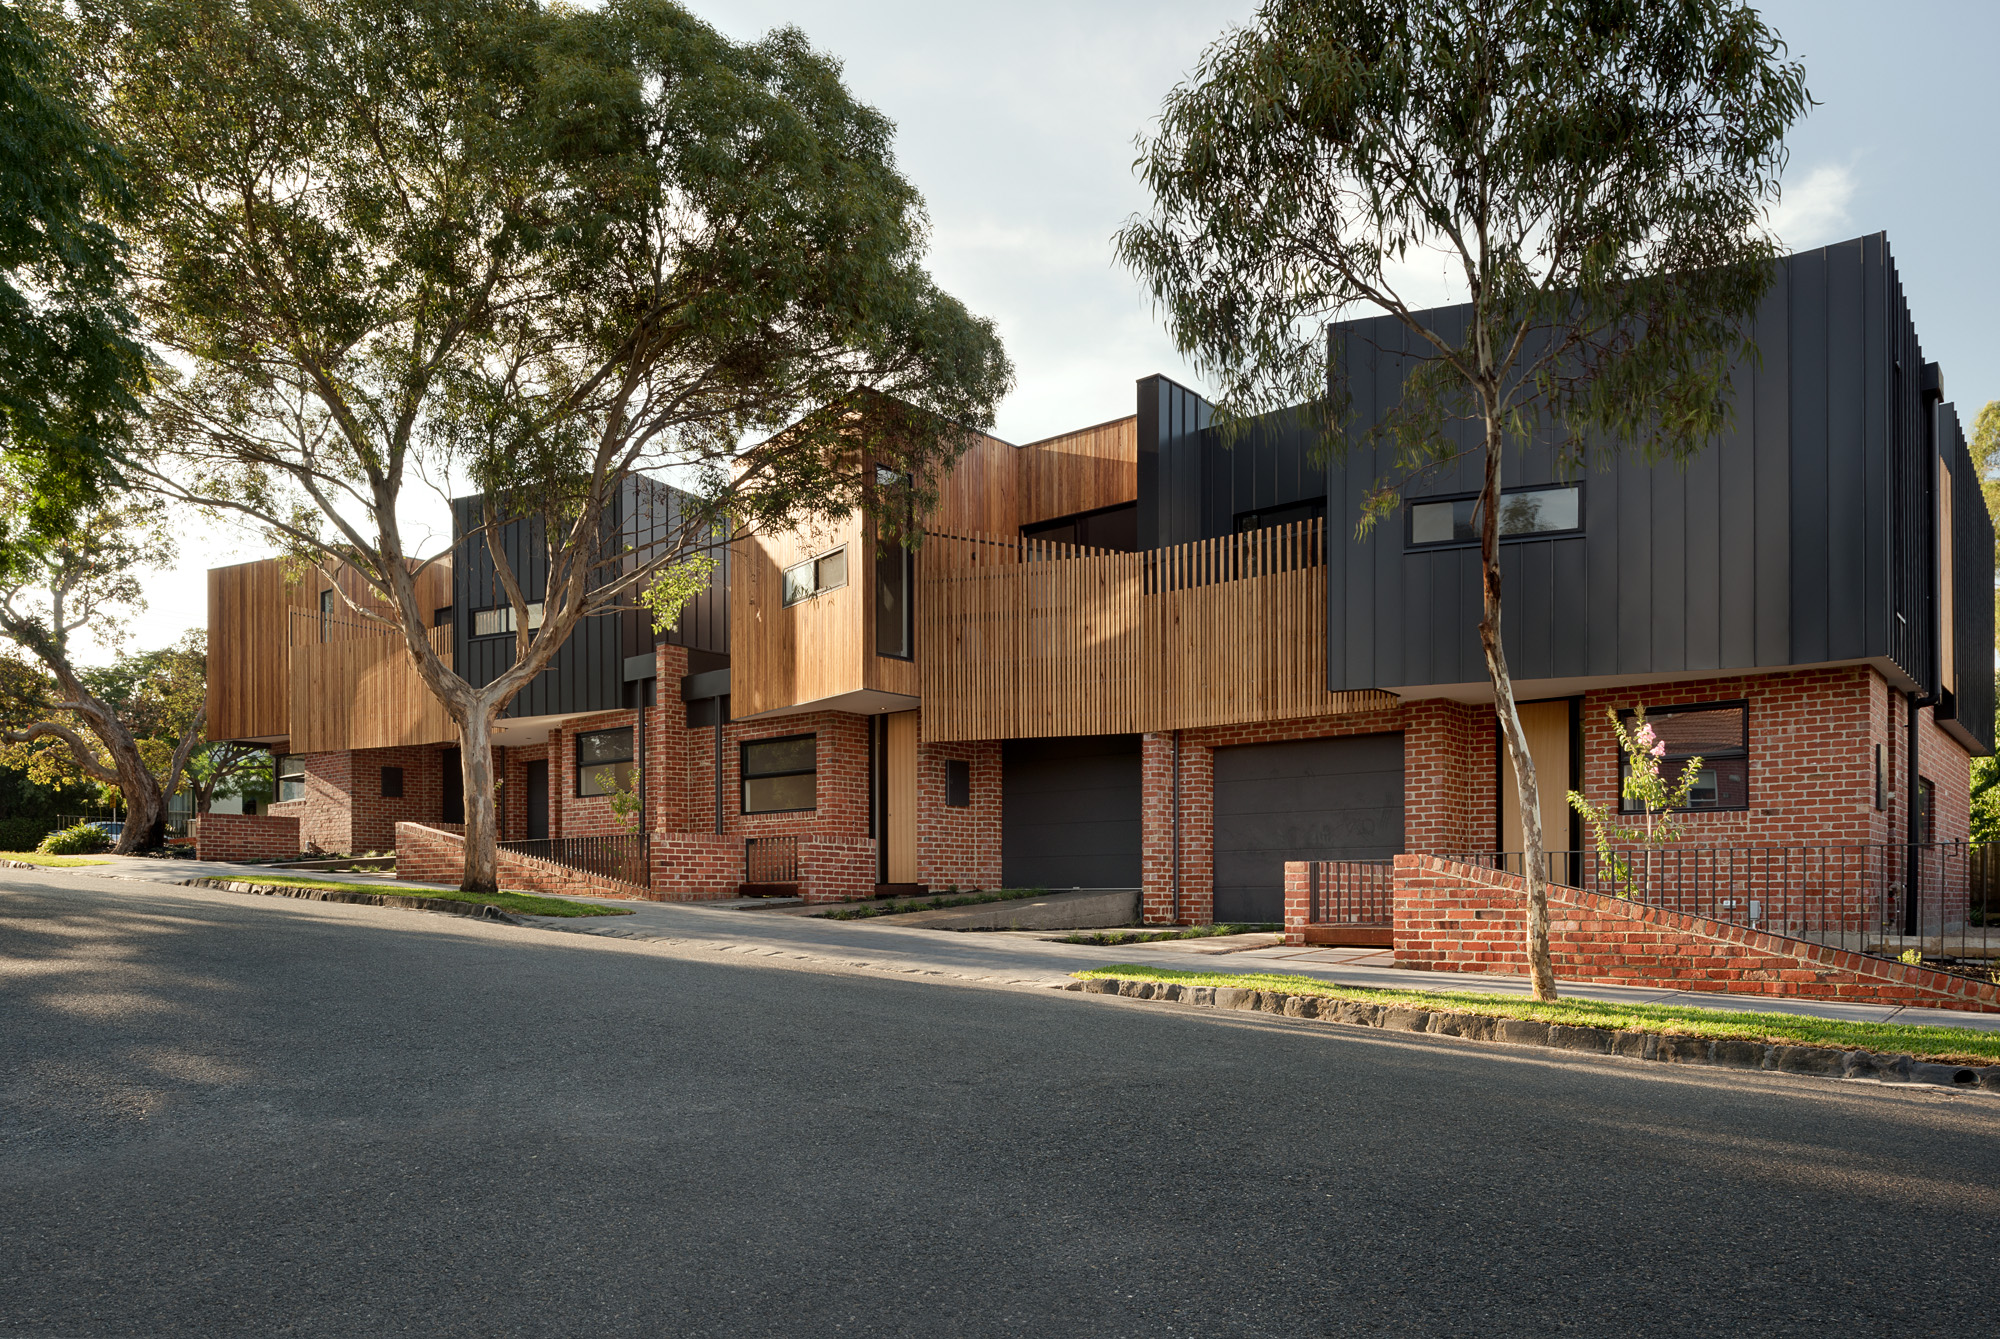 alphington townhouses articulated facade award winning residential architects melbourne